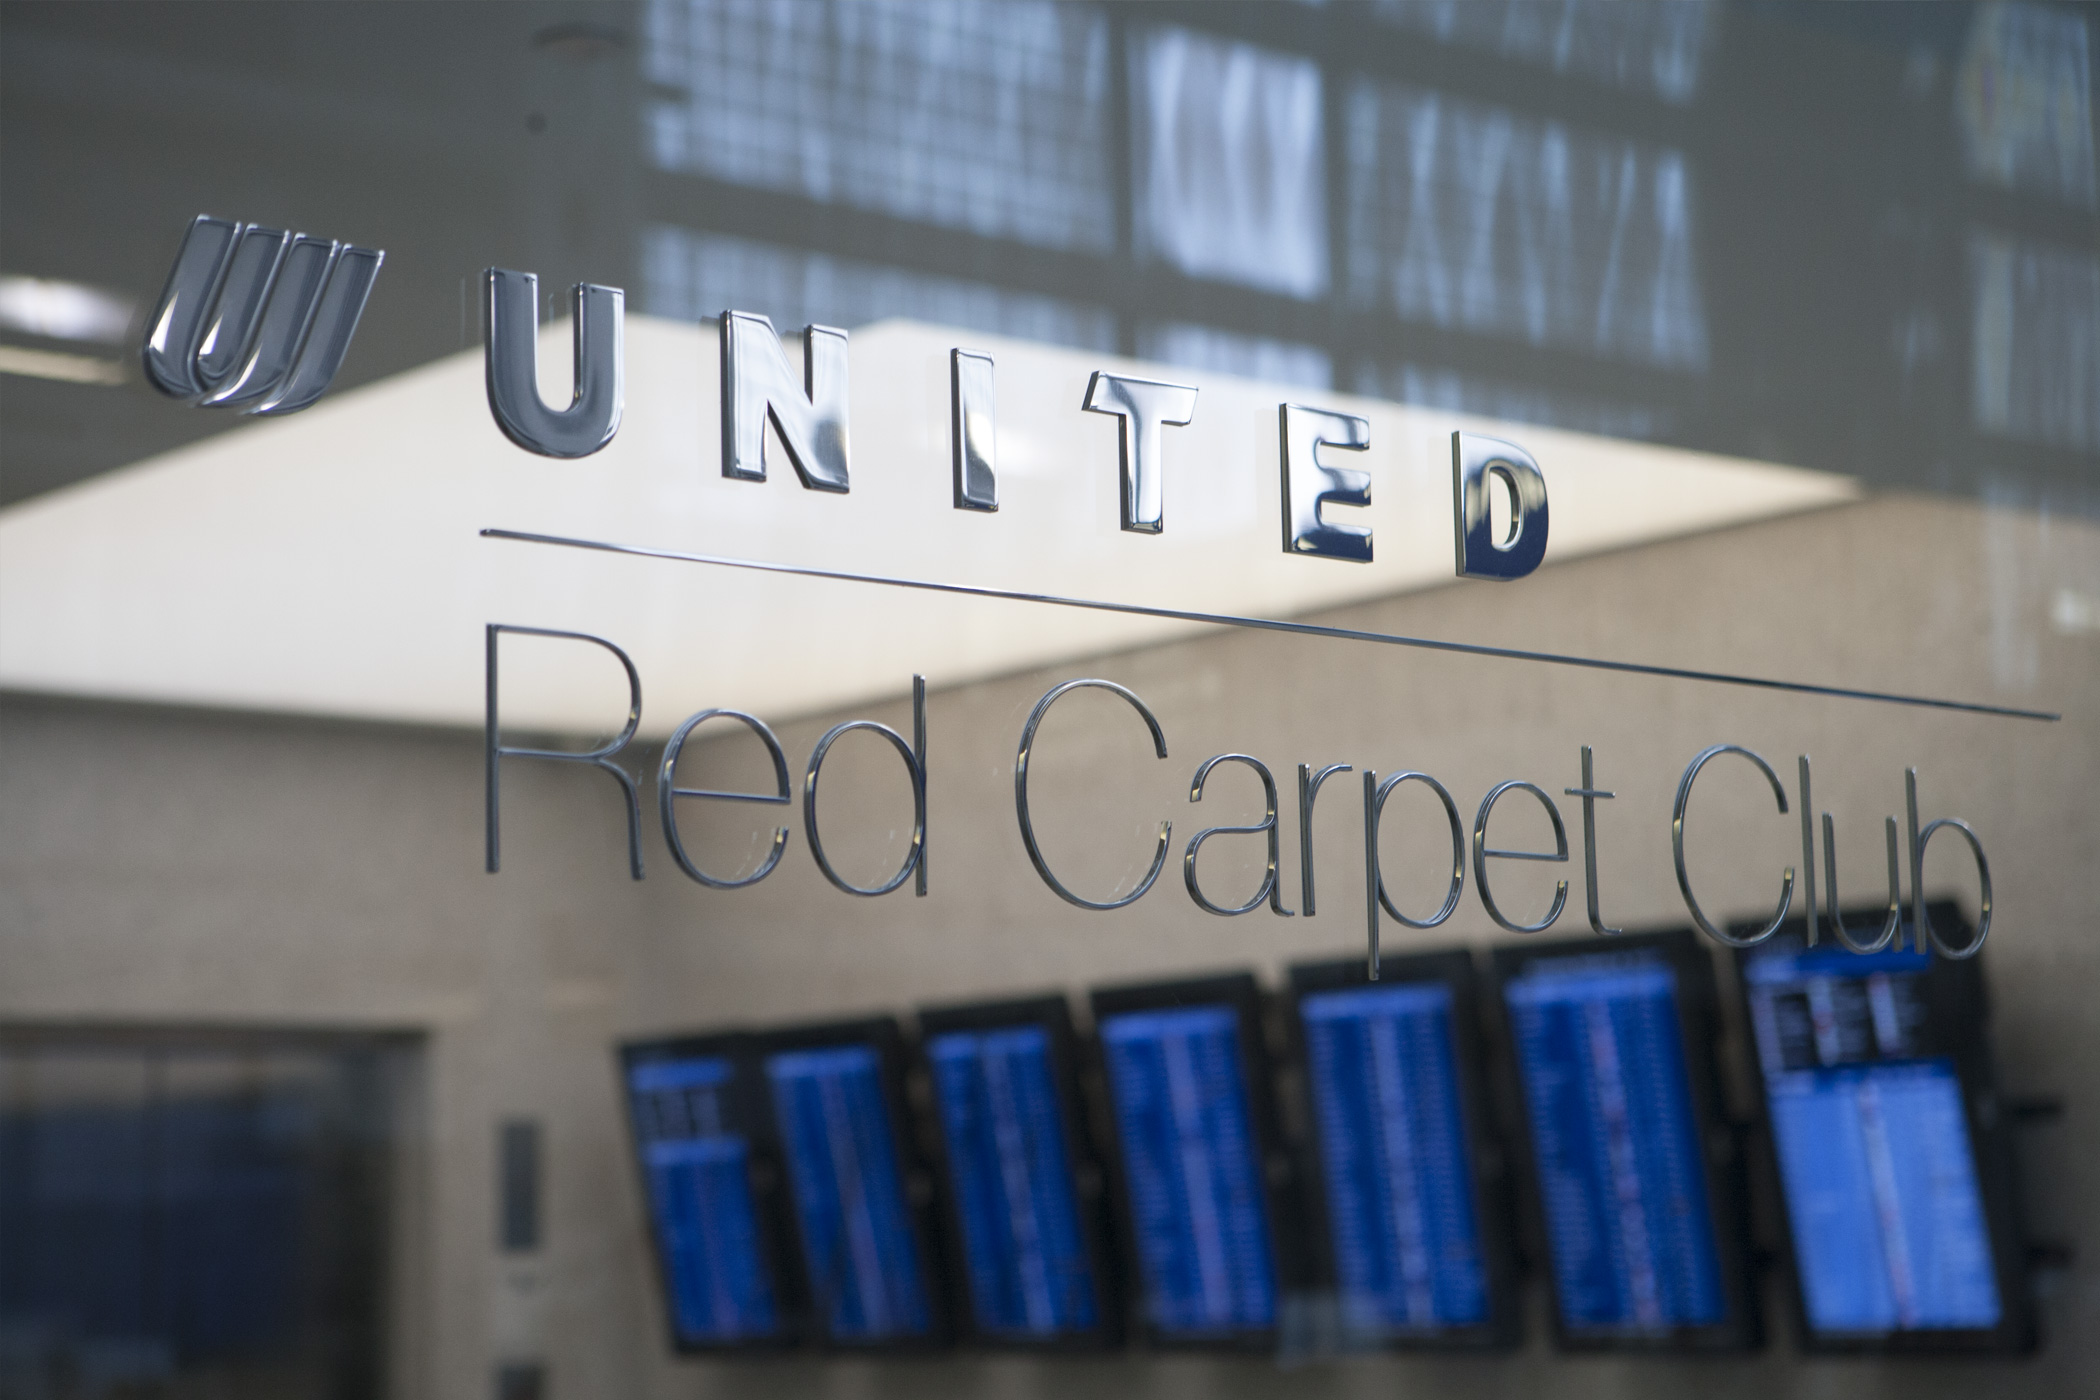 United Airlines Red Carpet Club signage in a glass partition.